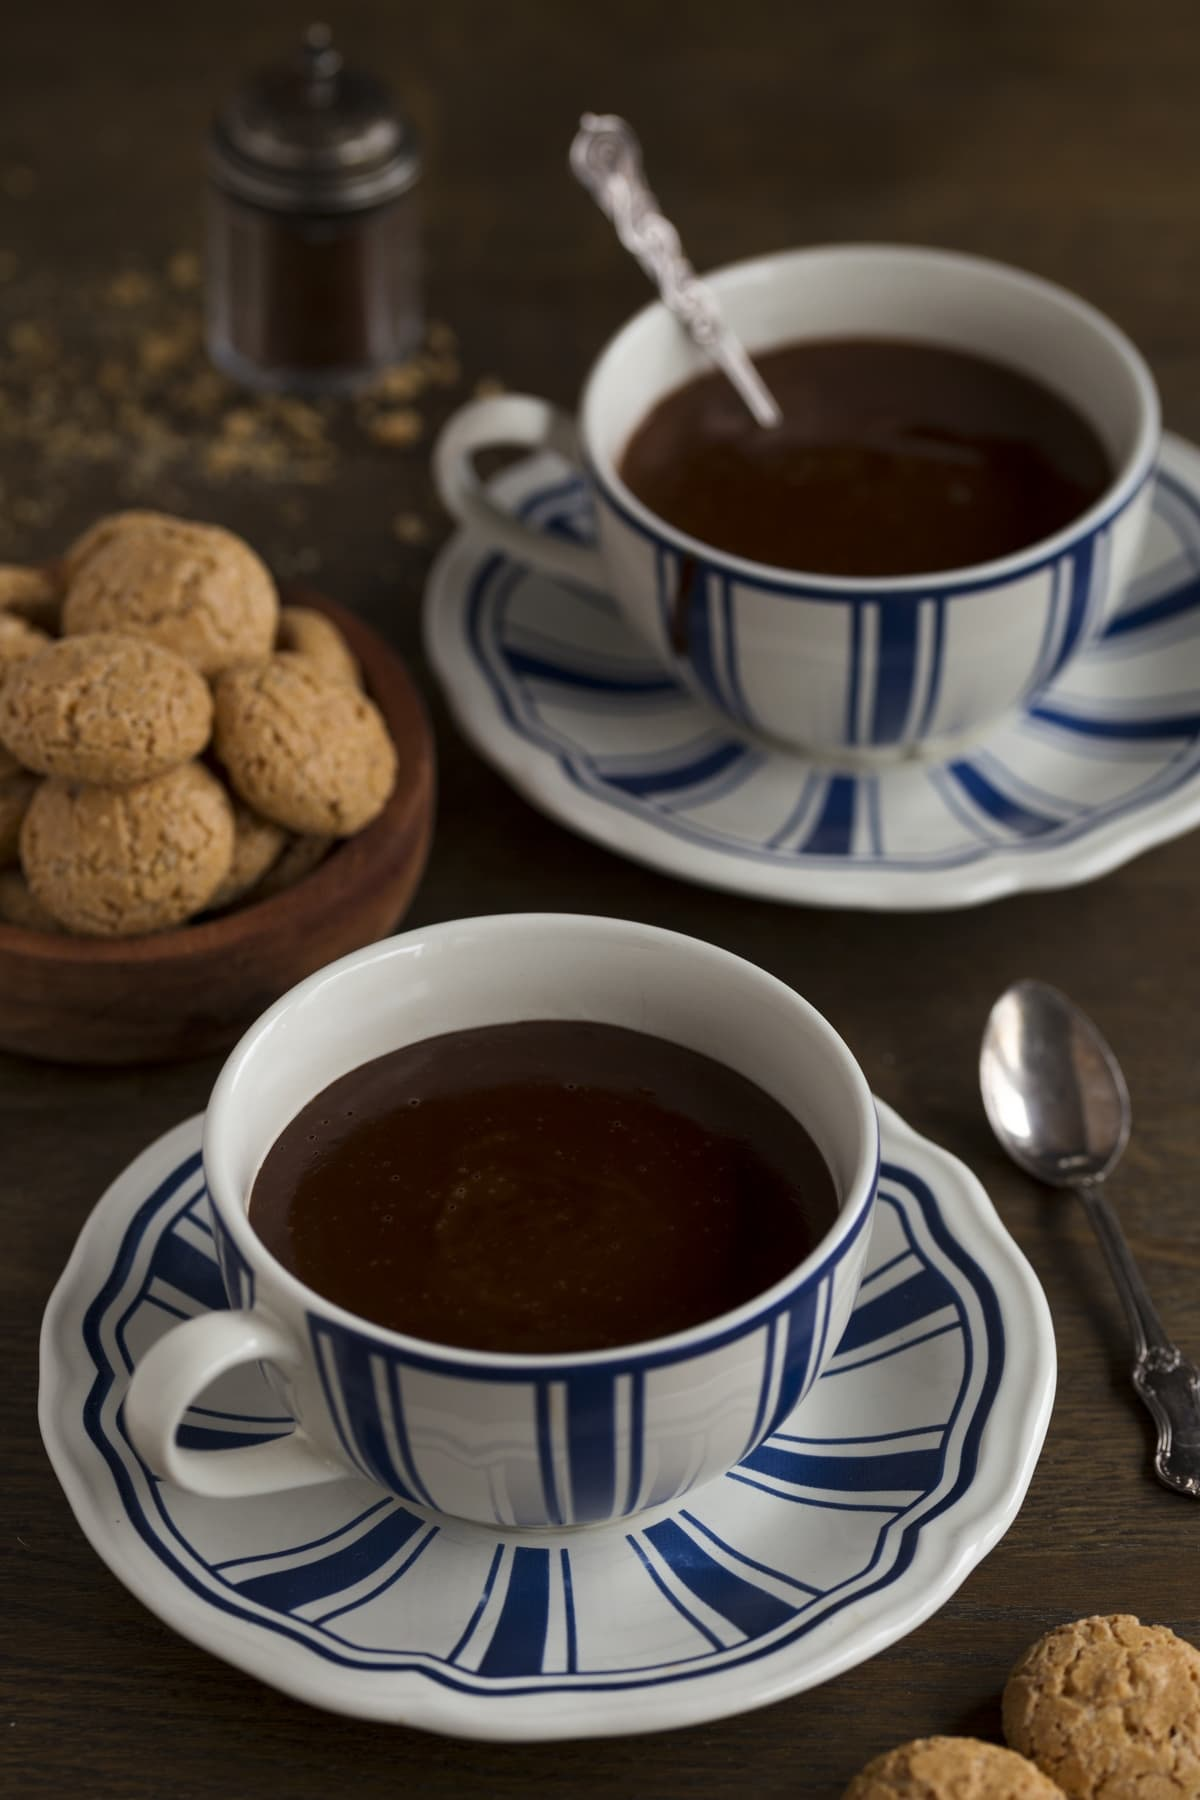 Two cups of hot chocolate on a dark table.